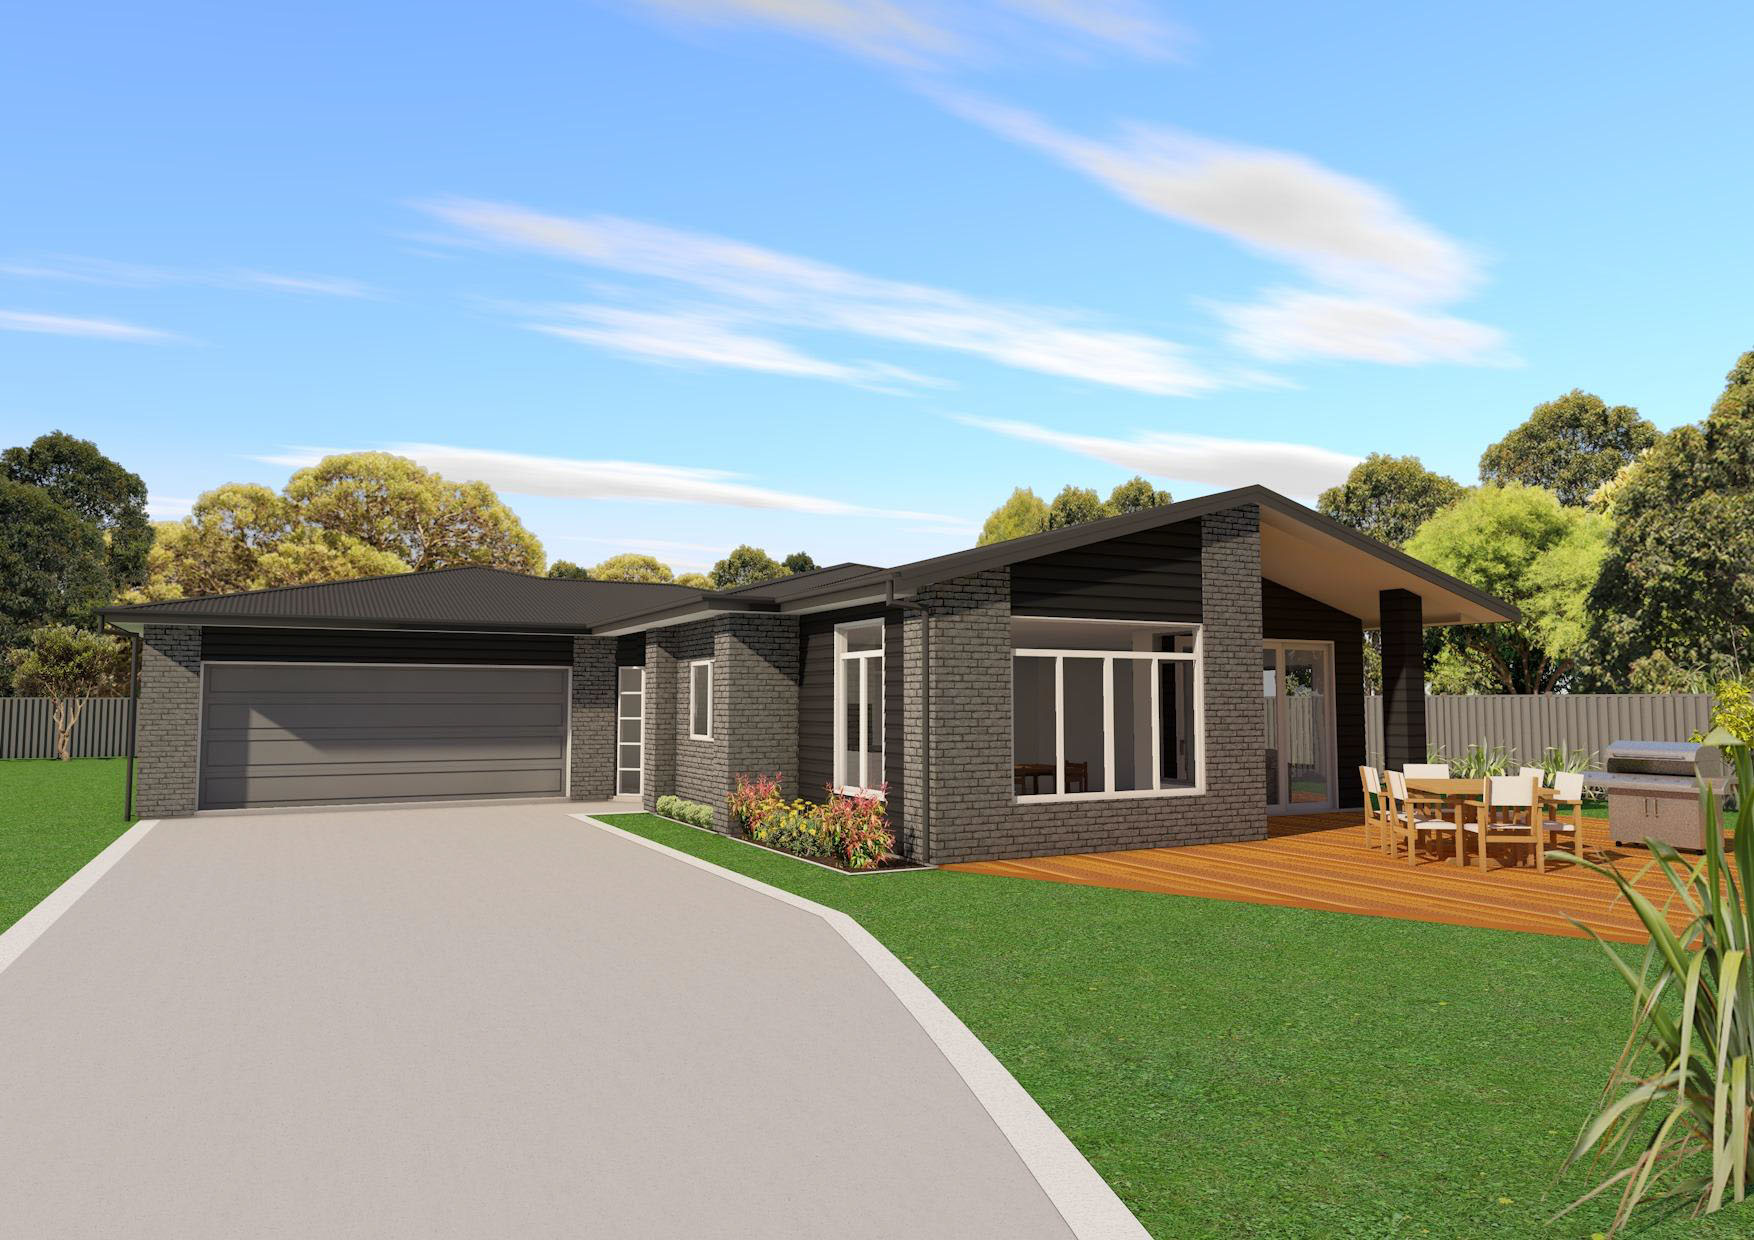 Takahe 10 render  Preview Plans Takahe 10 render